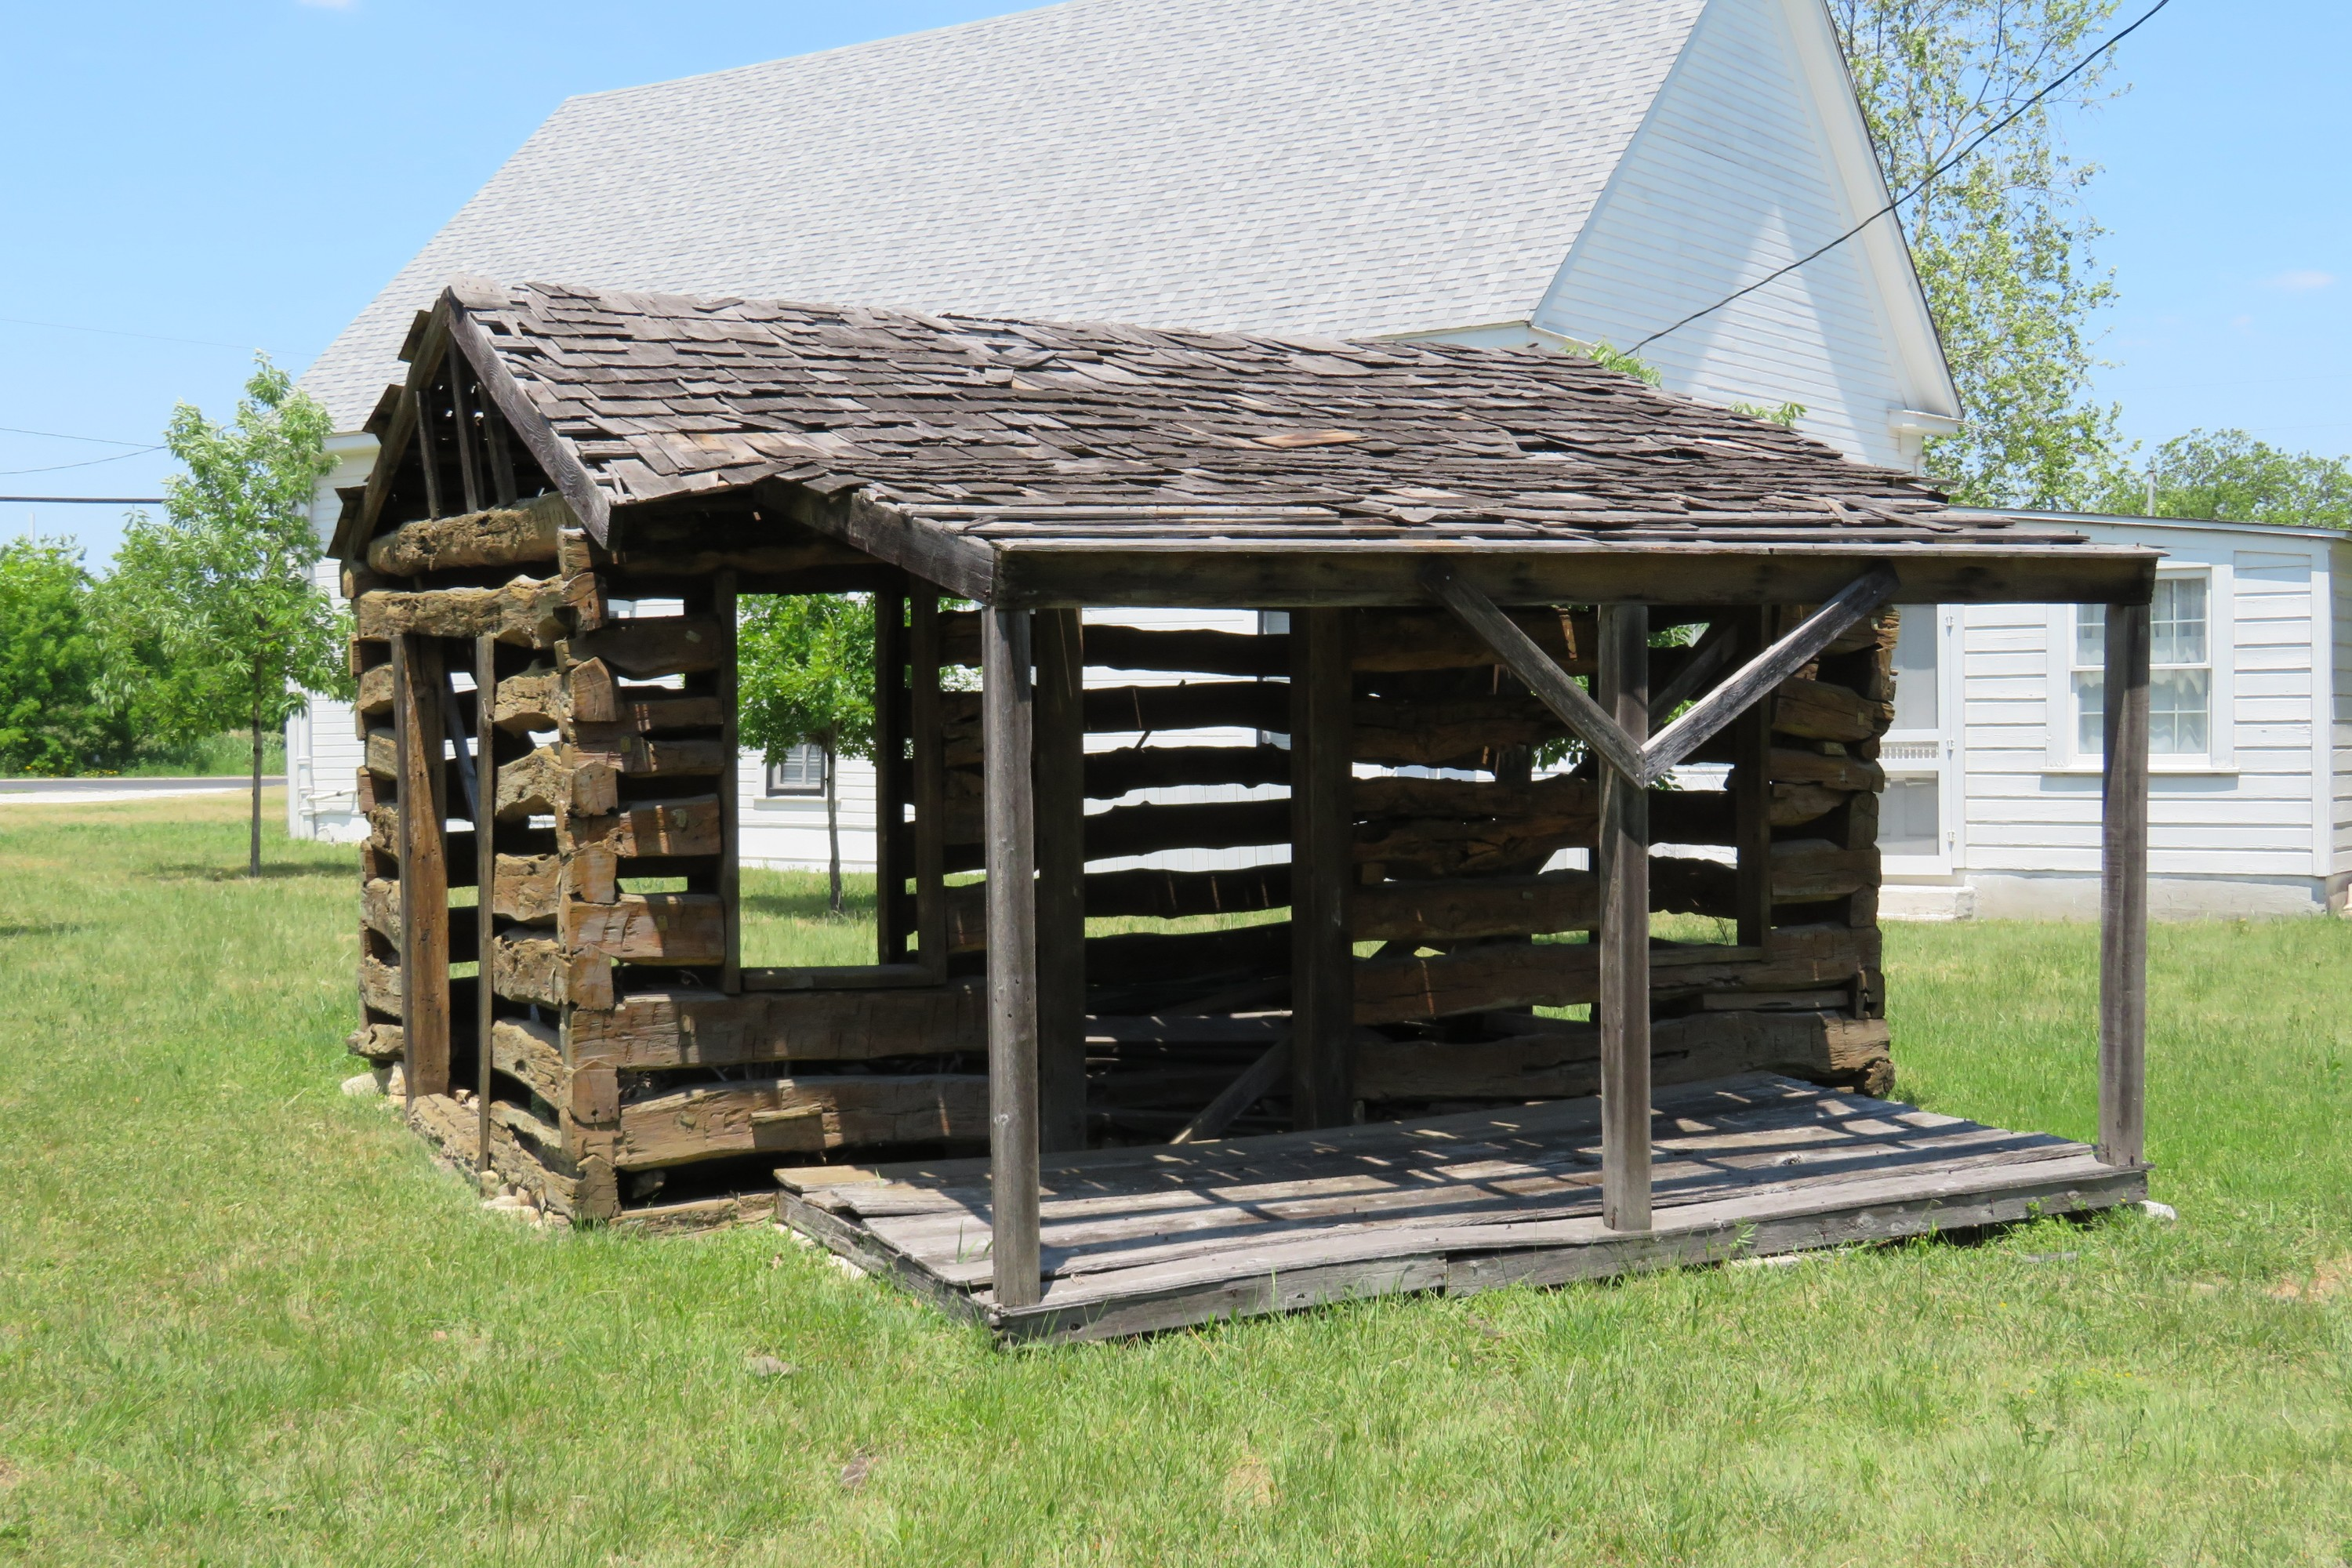 This cabin is located near the chruch